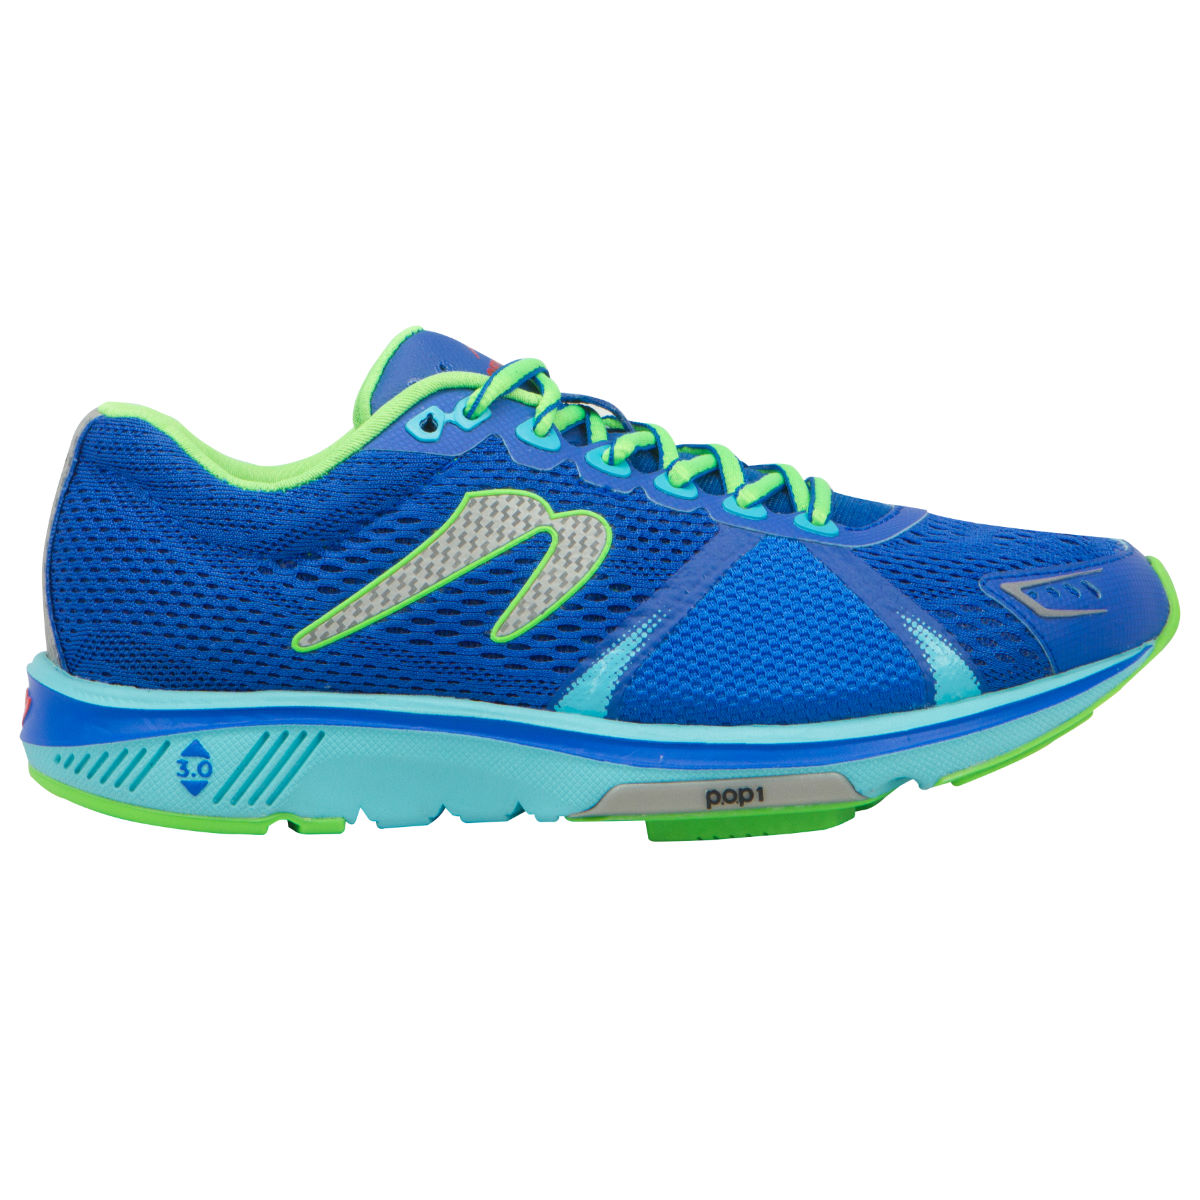 Newton Running Shoes Women's Gravity V (SS16) - UK 7.5 Blue